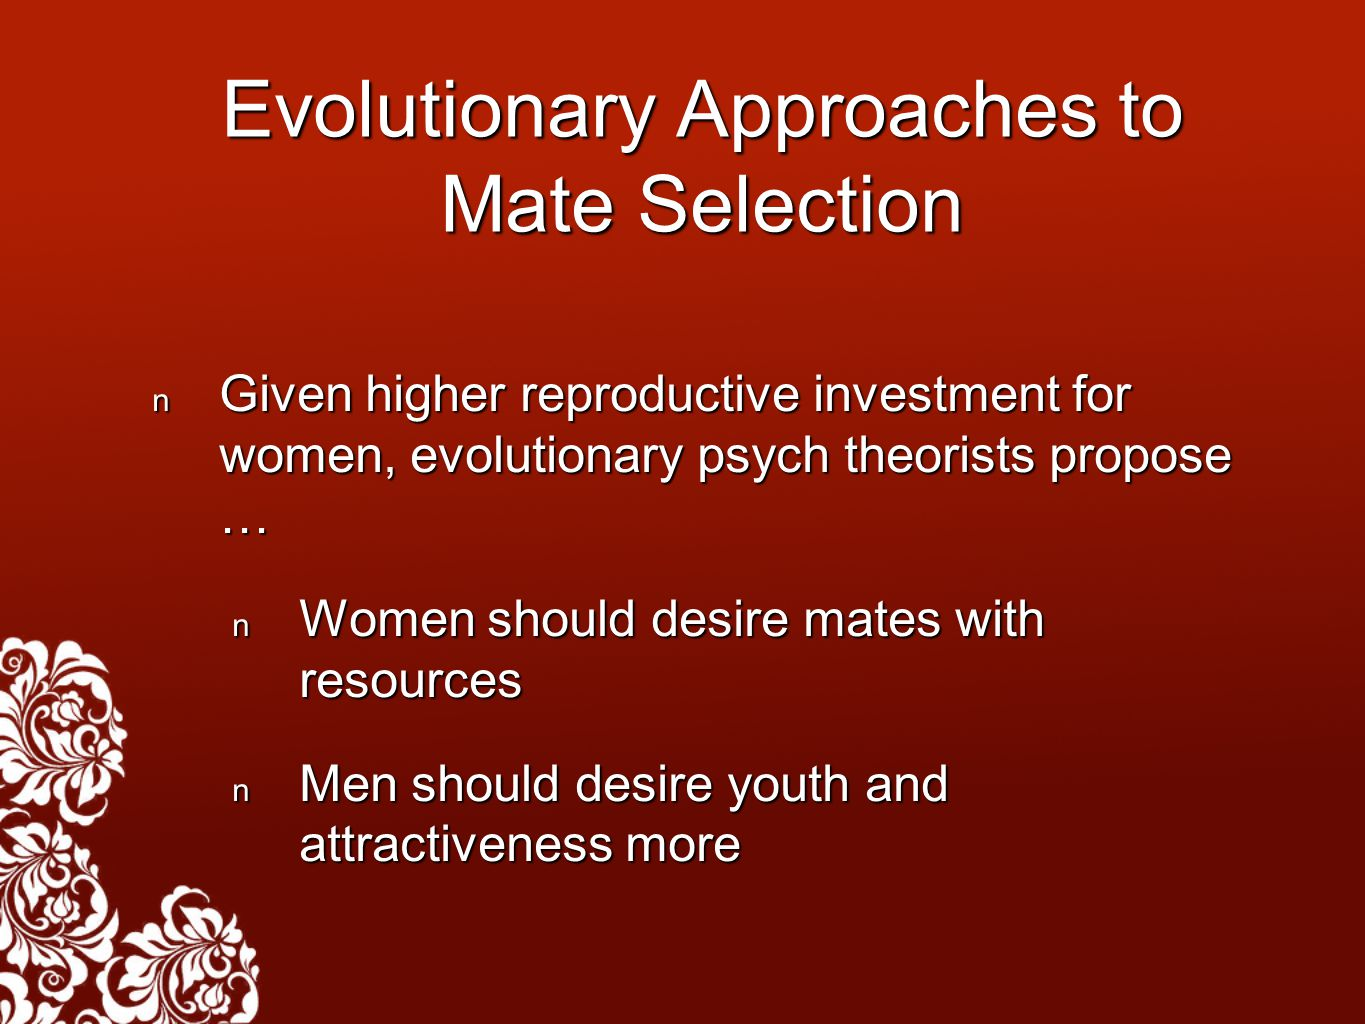 Evolutionary Approaches to Mate Selection Given higher reproductive investment for women, evolutionary psych theorists propose … Given higher reproduc